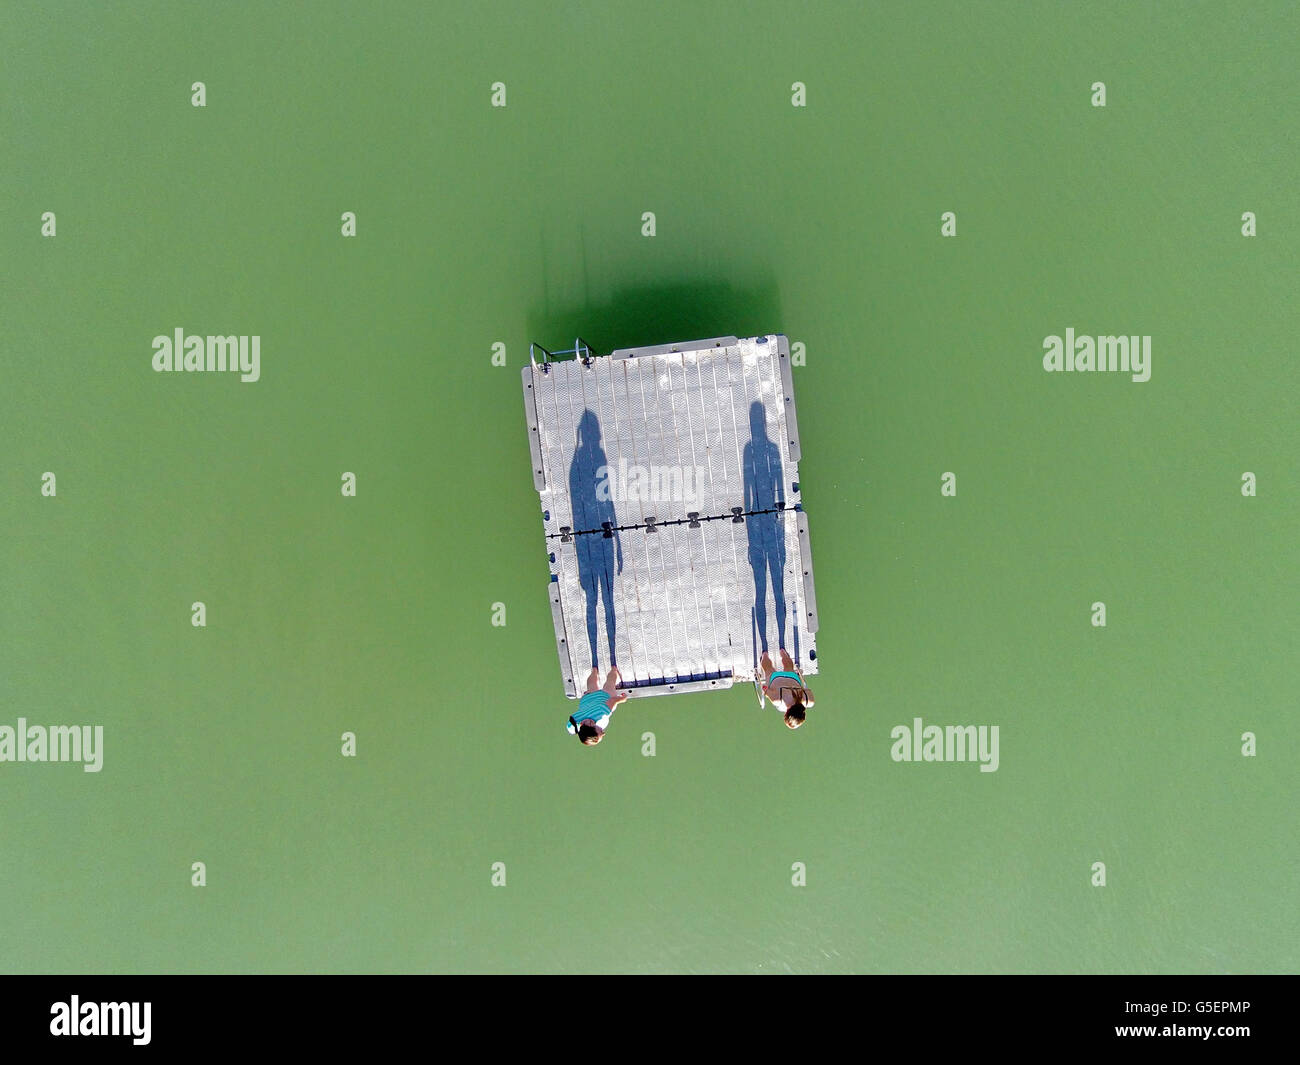 Two swimmers (and shadows) standing on pontoon, Bannockburn Inlet, Lake Dunstan, Central Otago, New Zealand - drone - Stock Image